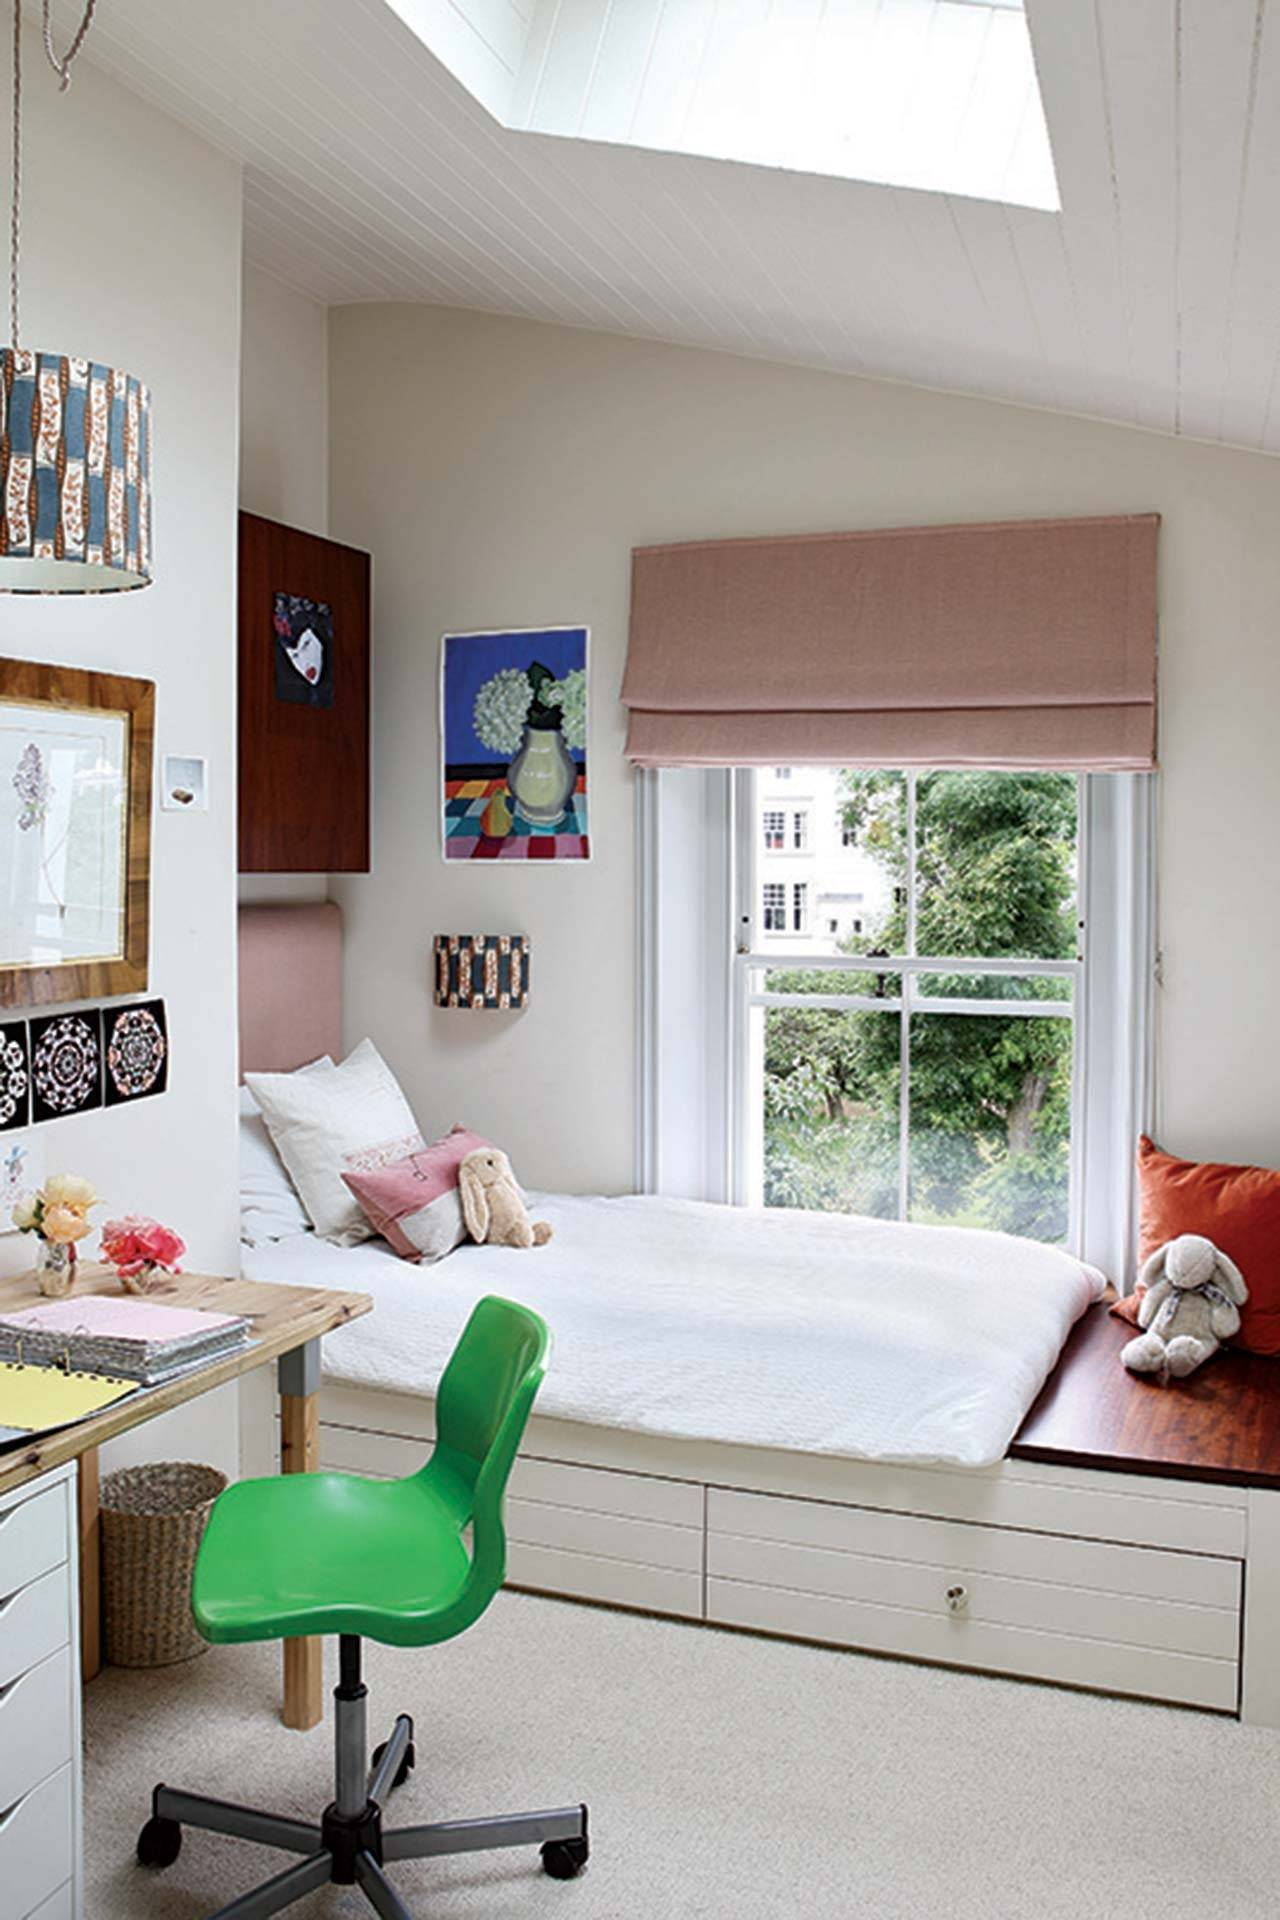 Small Kids Bedrooms Interior Design Ideas For Small Spaces House Garden